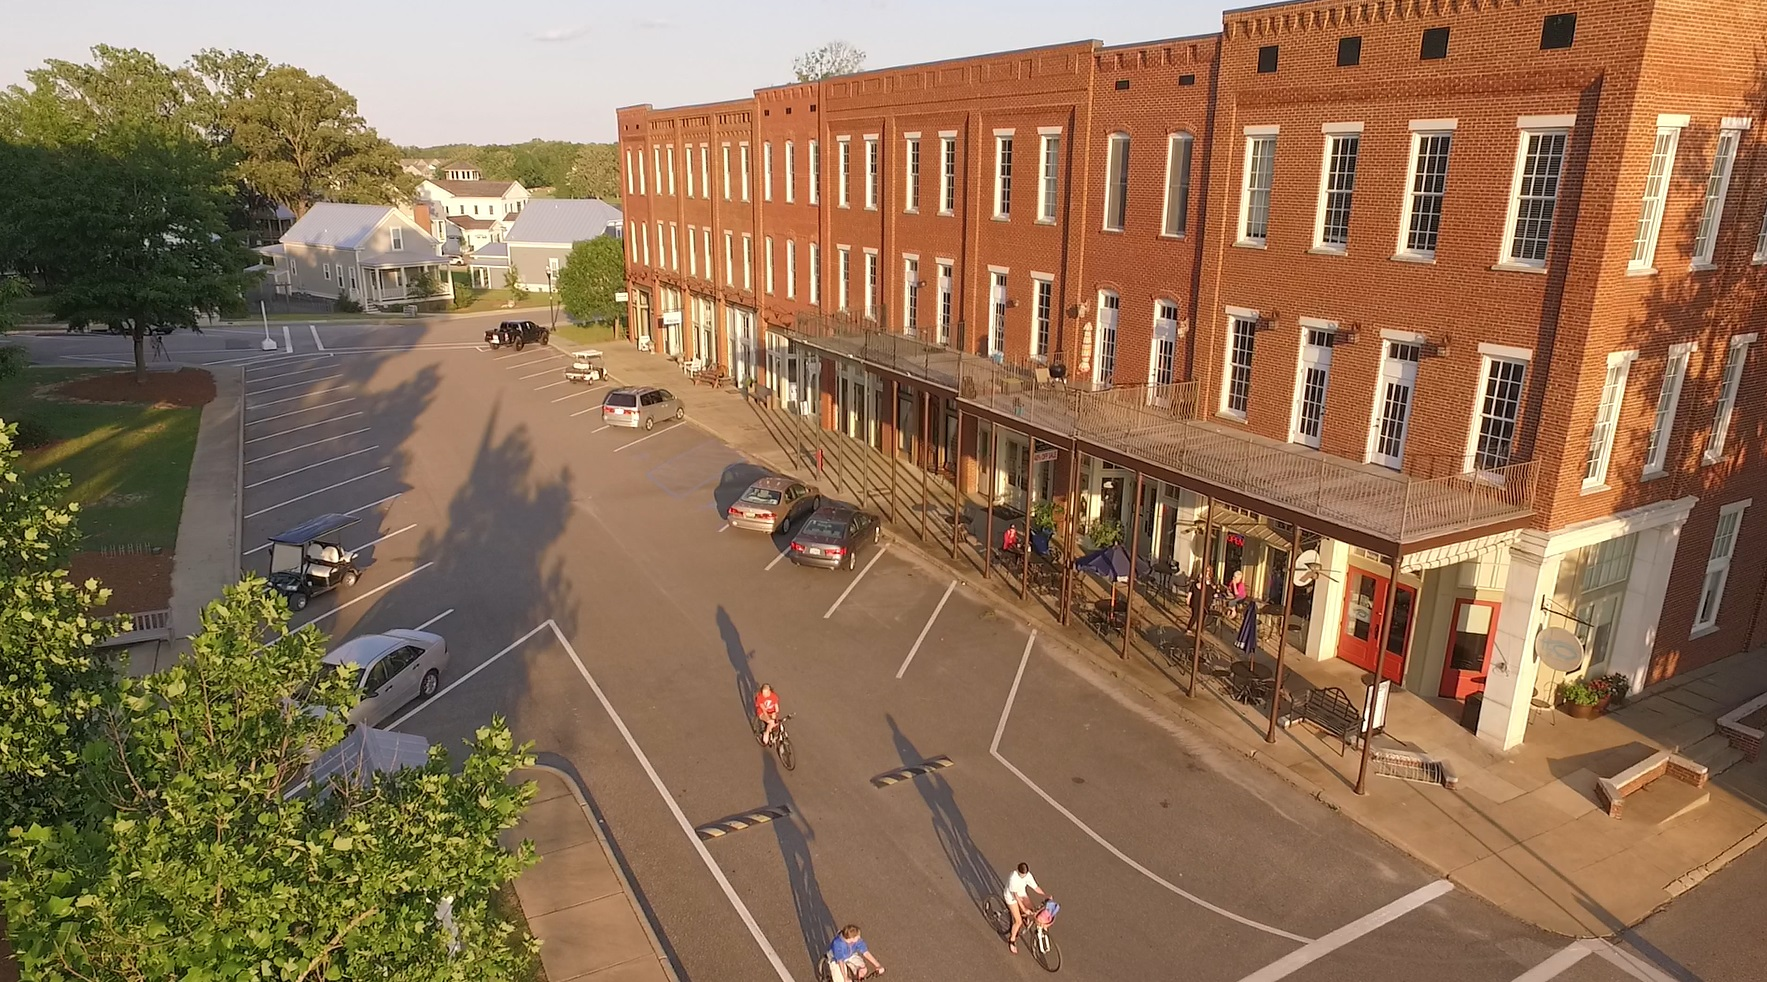 Photo of town square building with cars and bicyclists